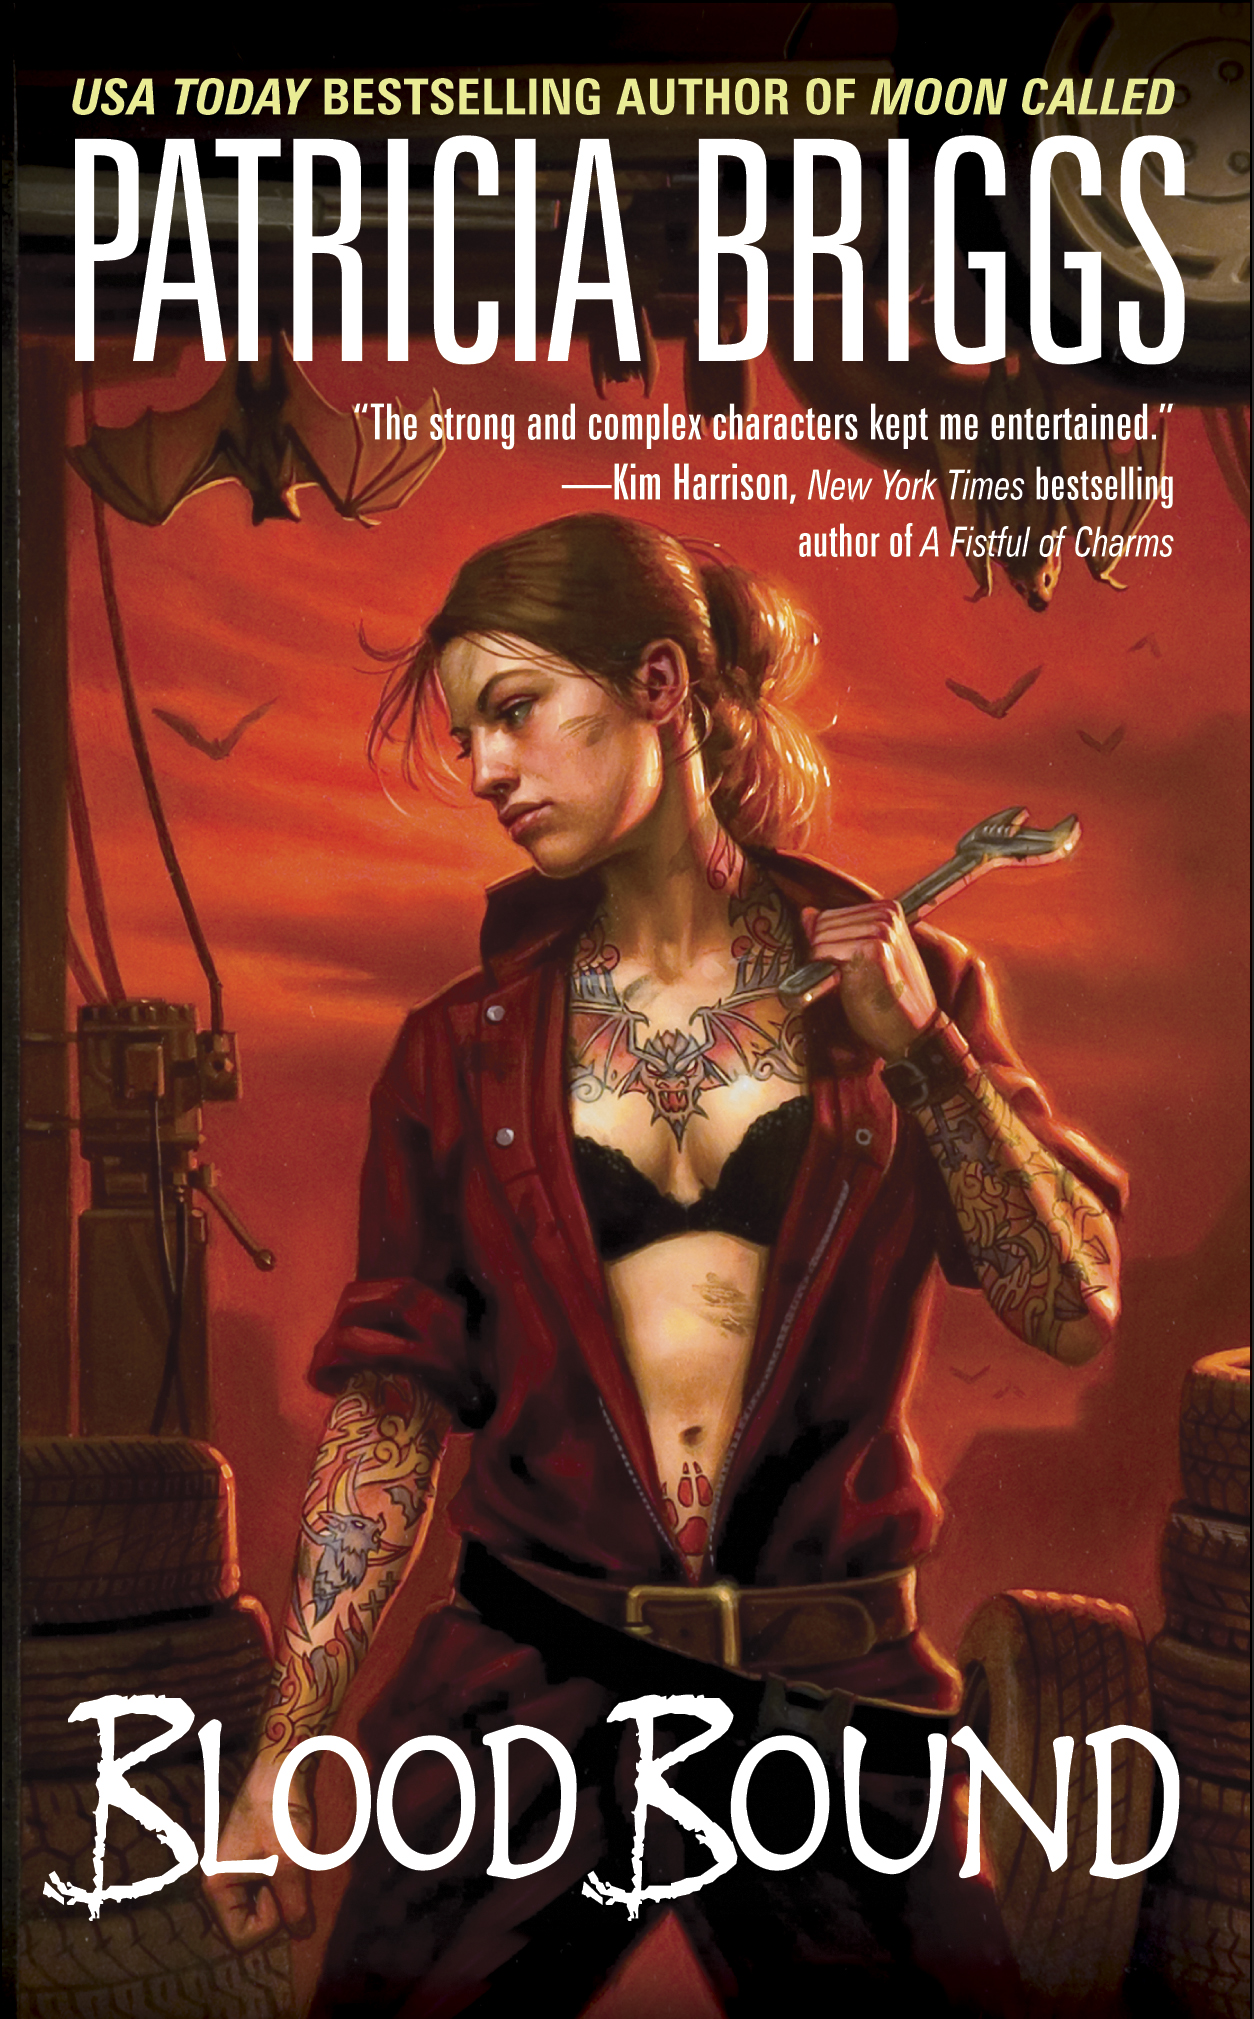 Blood Bound (Mercy Thompson, Book 2) by Patricia Briggs